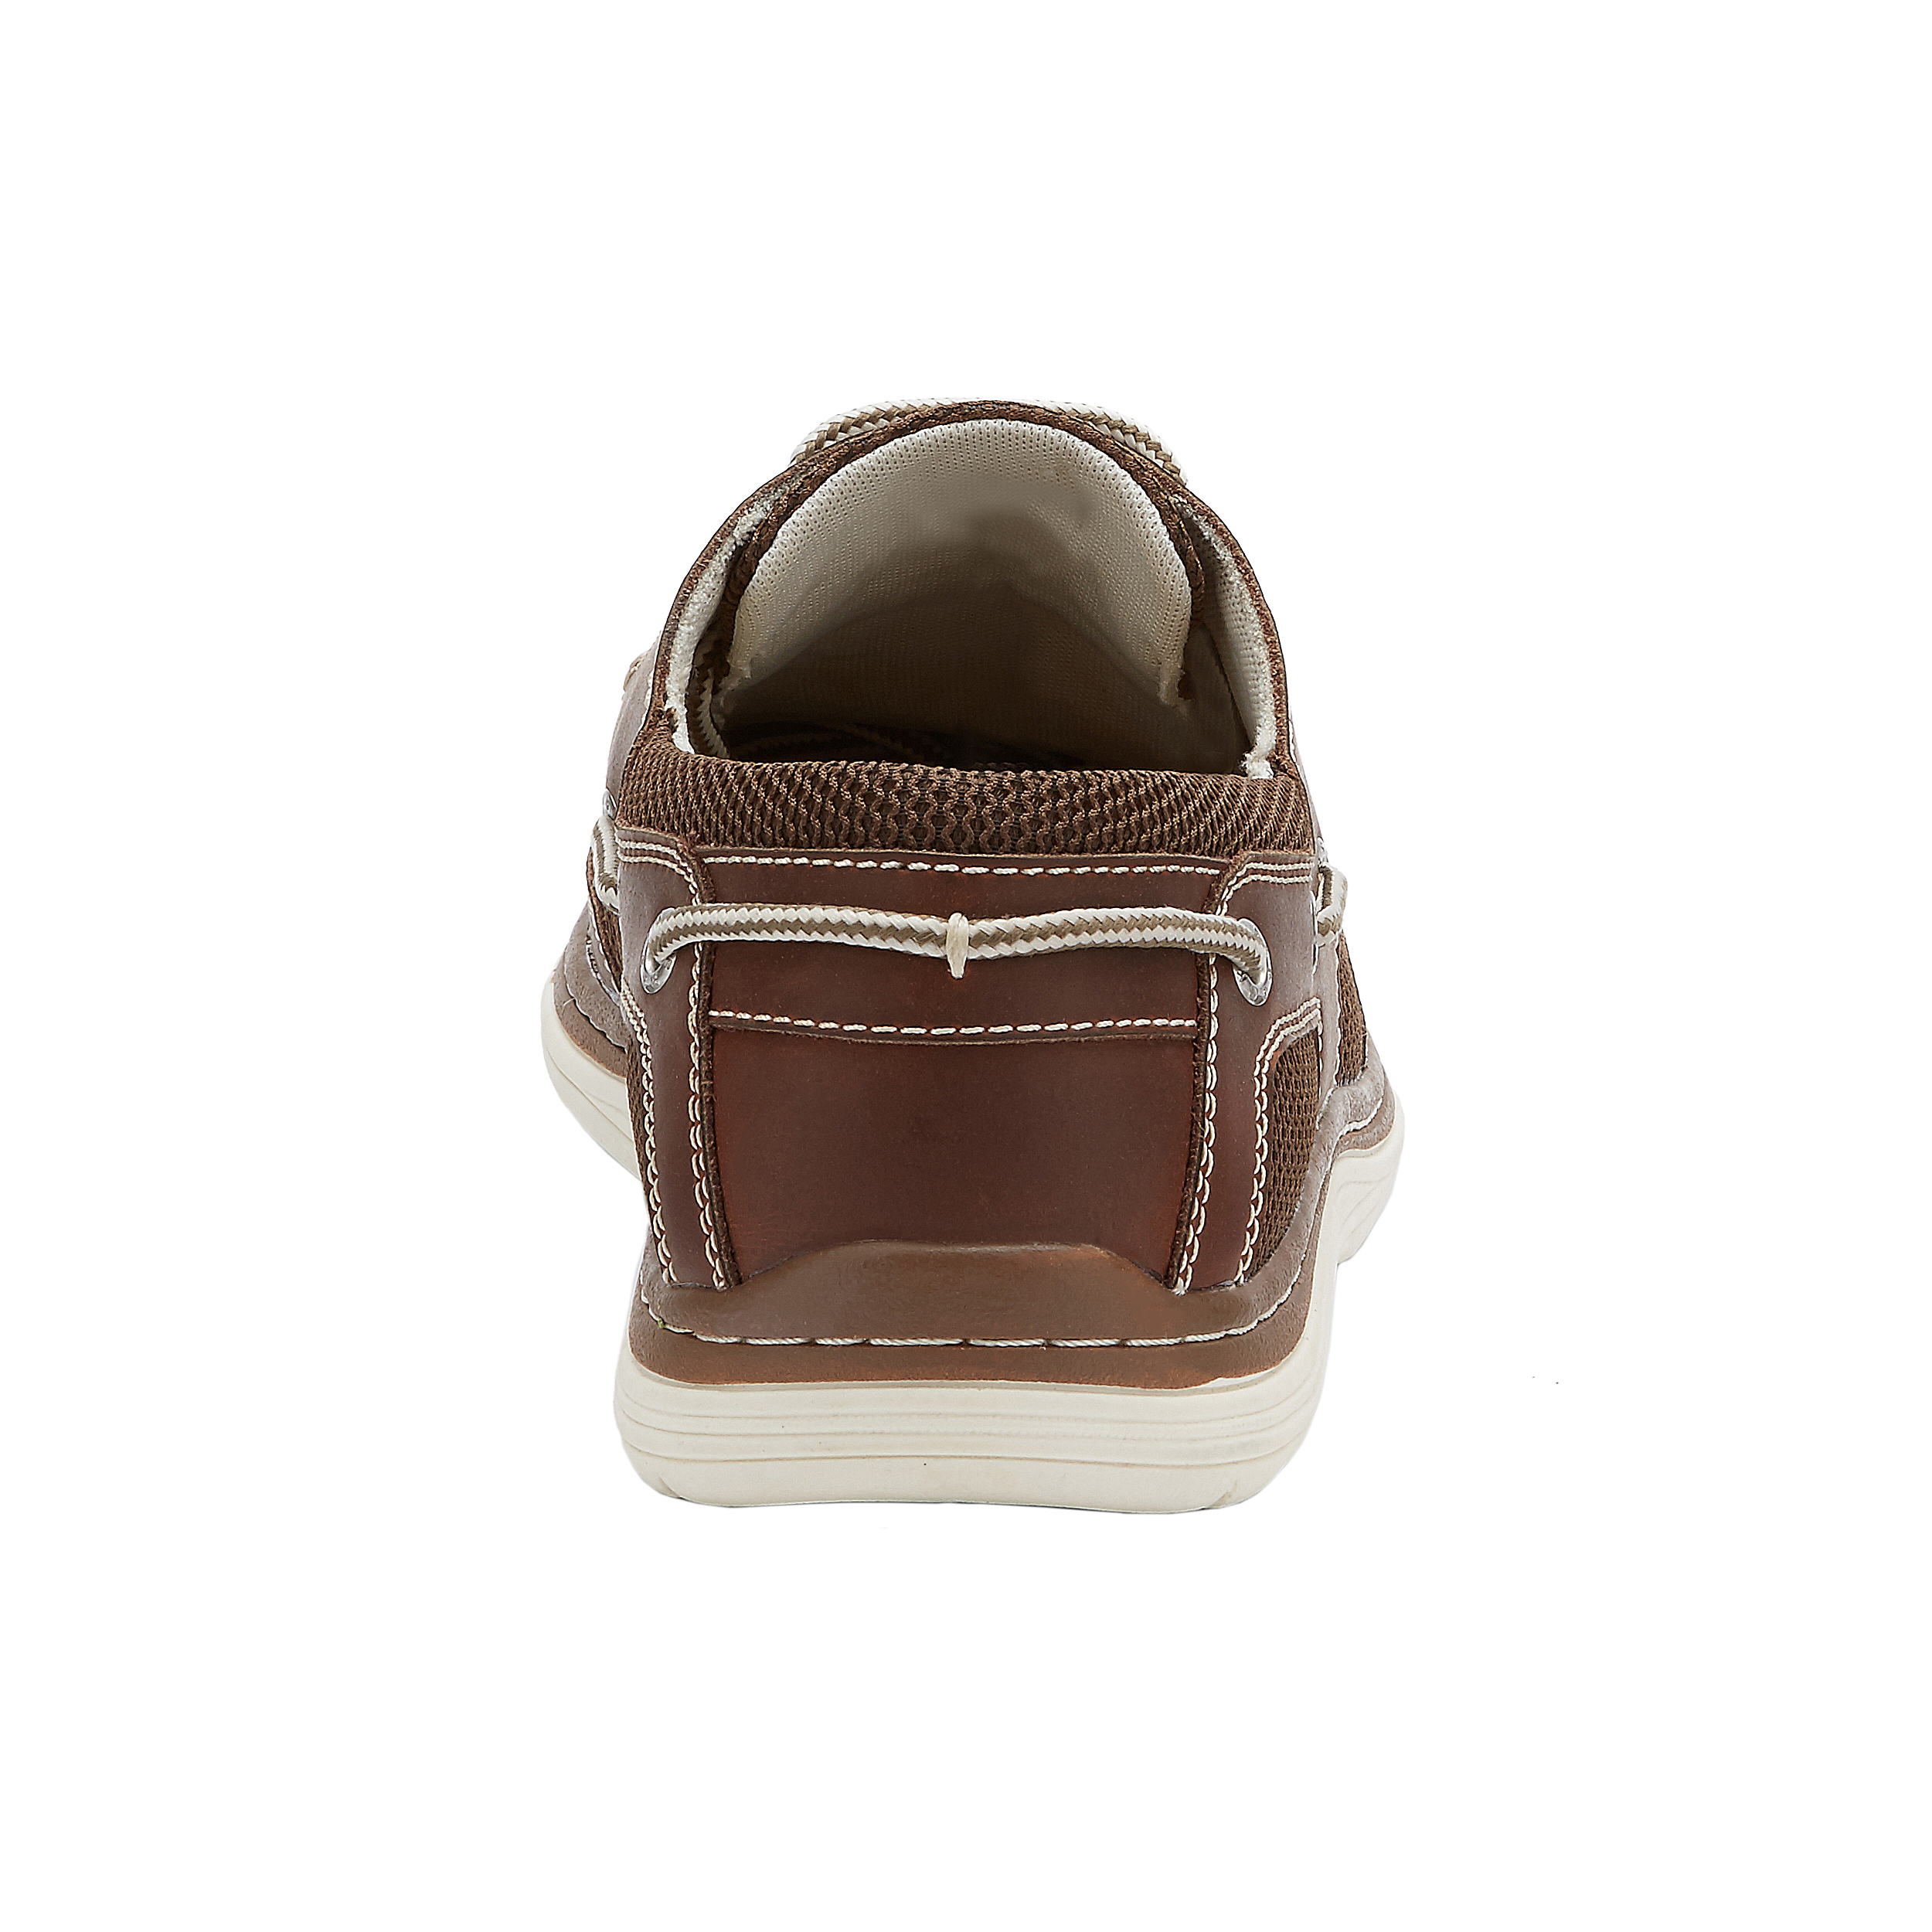 Dockers-Mens-Lakeport-Genuine-Leather-Casual-Rubber-Sole-Sport-Boat-Shoe thumbnail 21